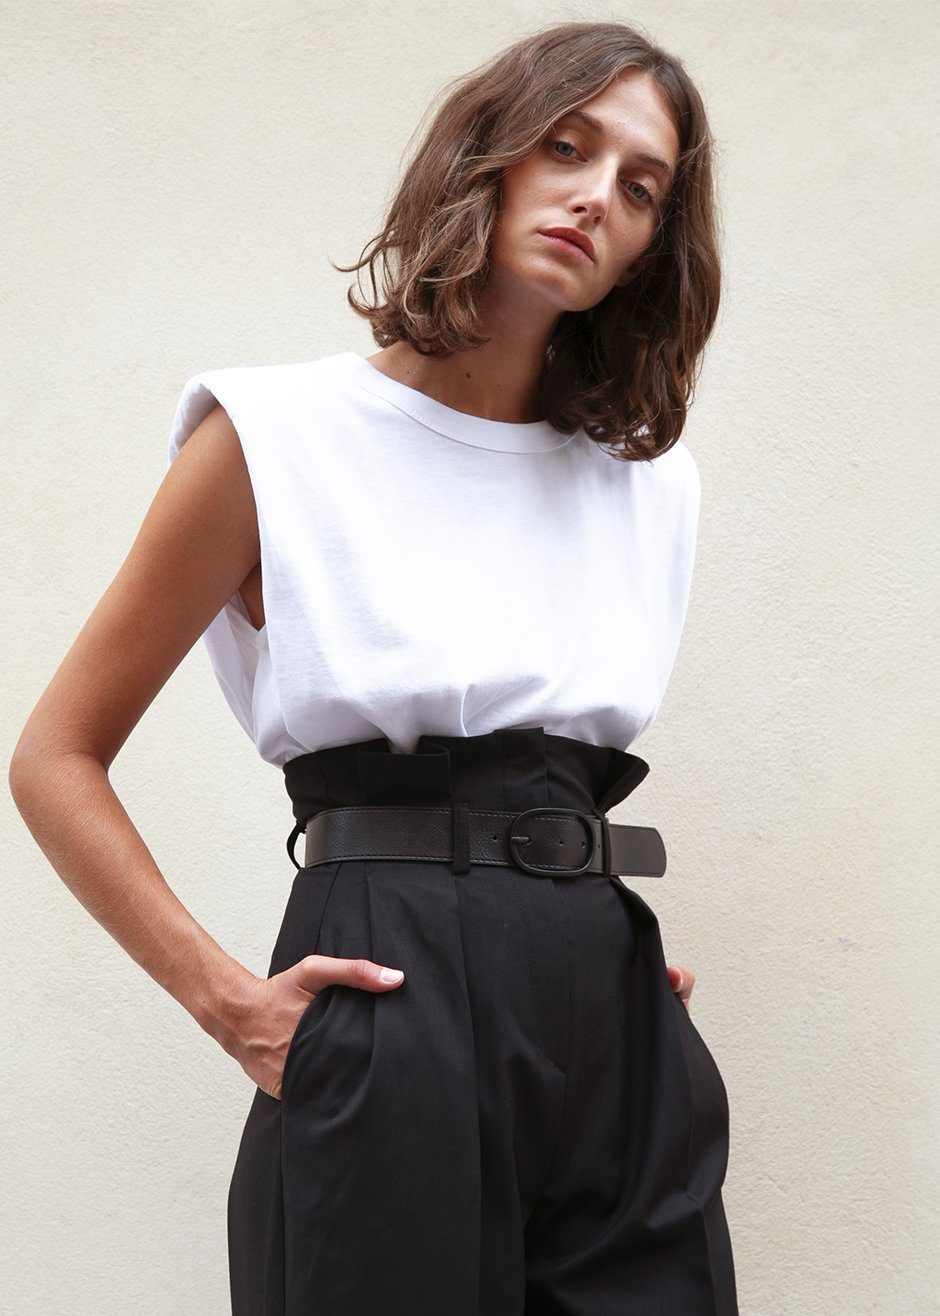 Eva Padded Shoulder Muscle T-Shirt in White $75.00